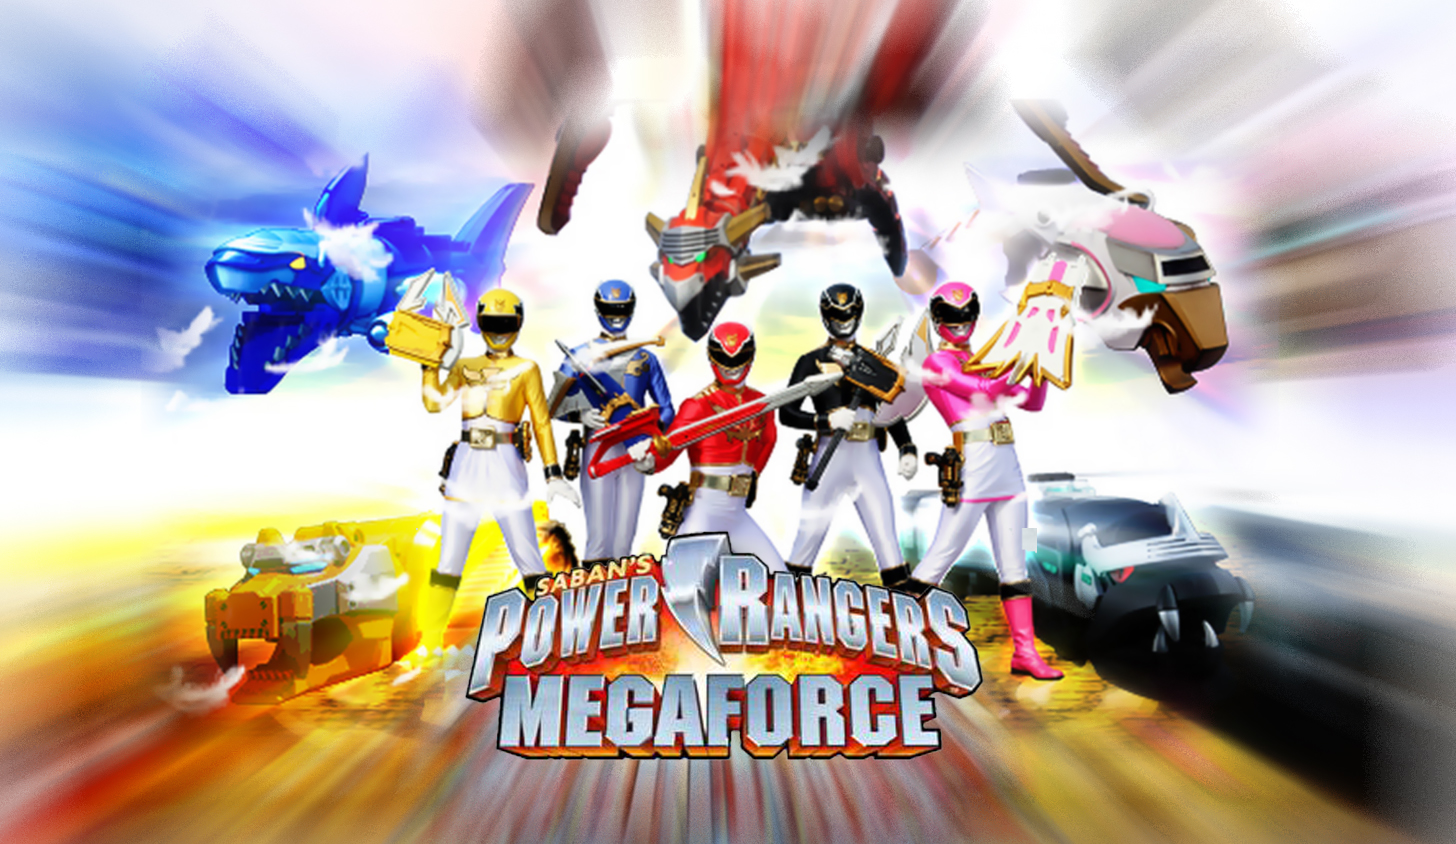 Power rangers megaforce announced for 3ds this autumn my - Moto power rangers megaforce ...